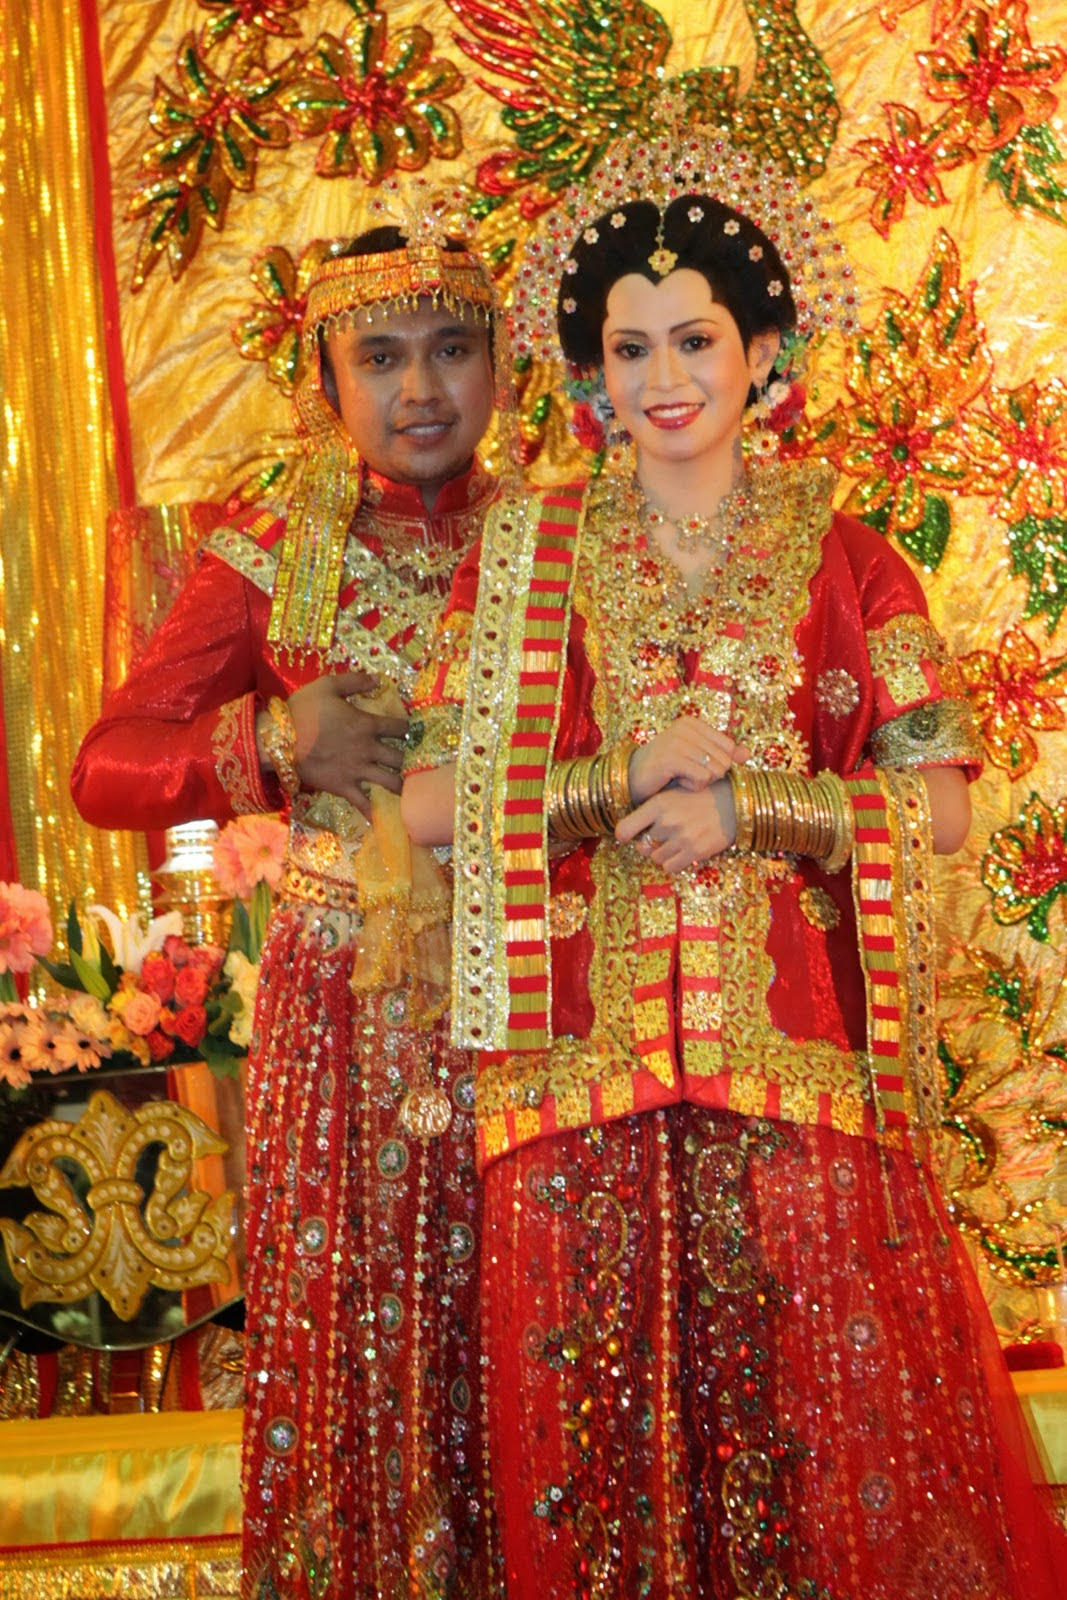 Wedding Dresses and Traditional Weddings Around the World ... |Indonesian Traditional Wedding Clothing